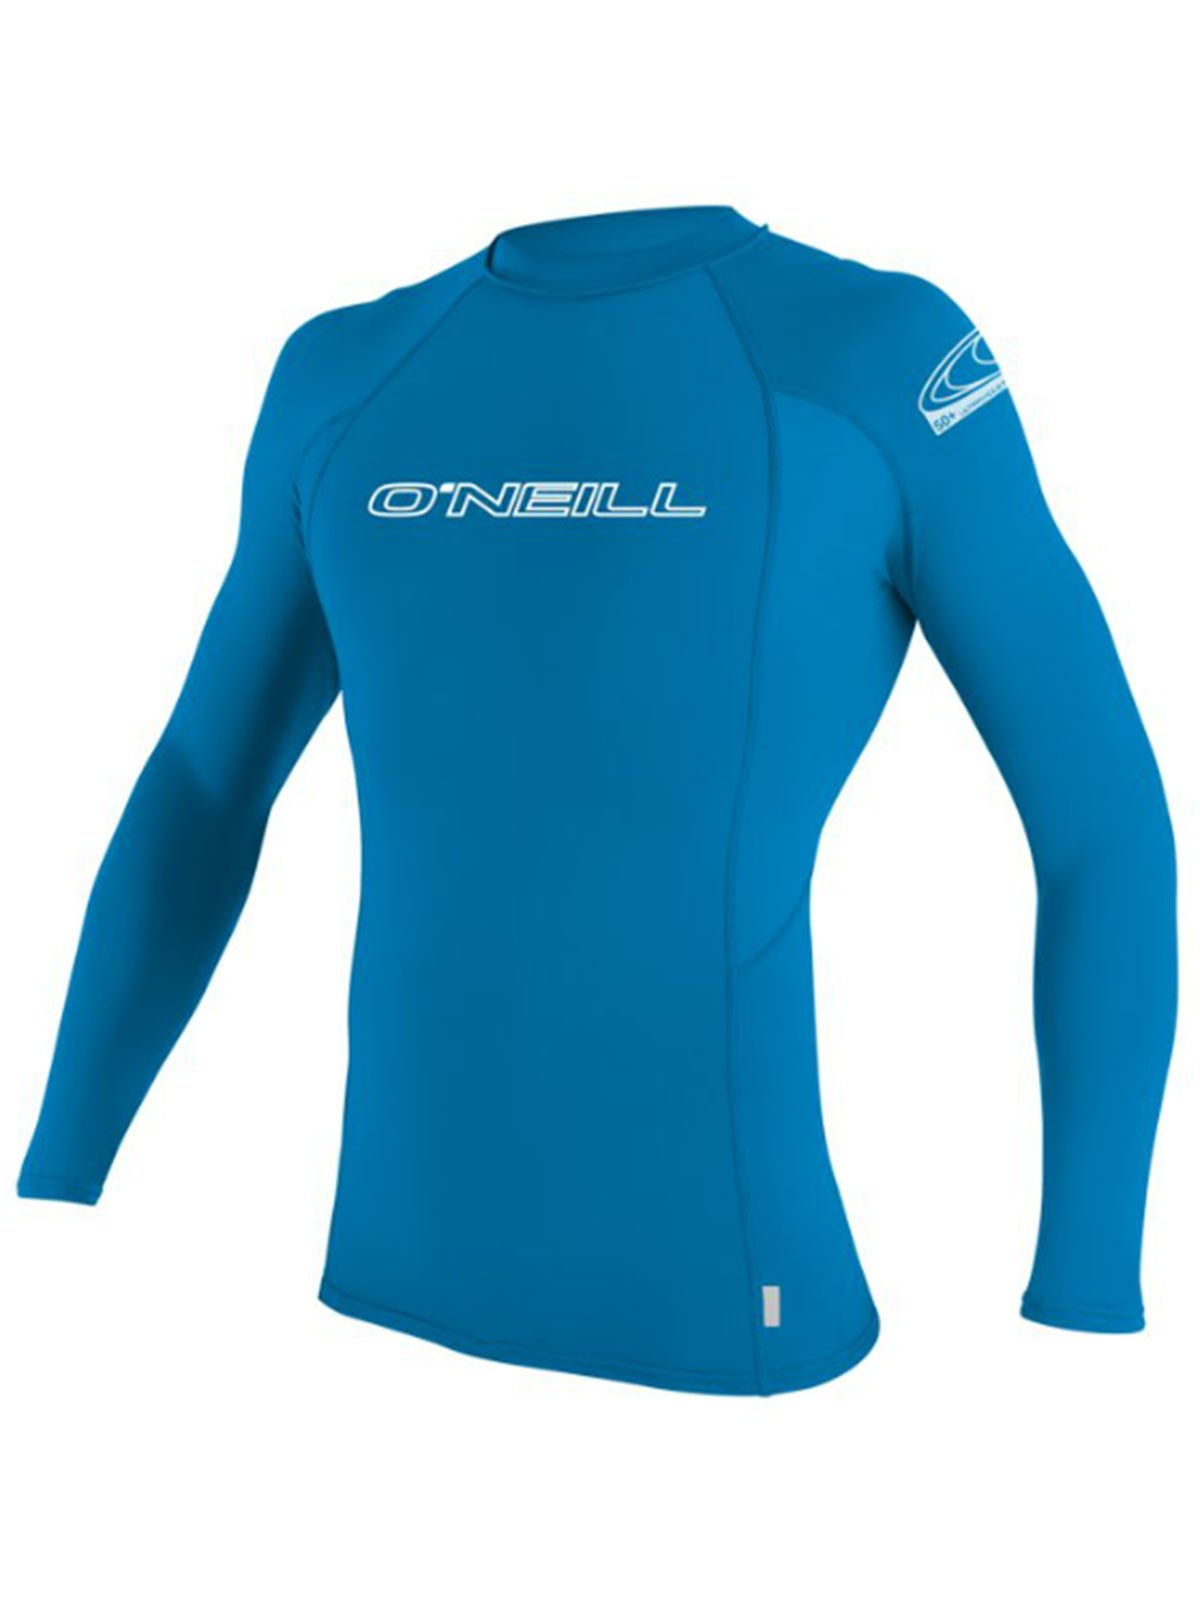 O'Neill men's basic skins long sleeve rashguard 2XL Brite Blue (3342IS) by O'Neill Wetsuits